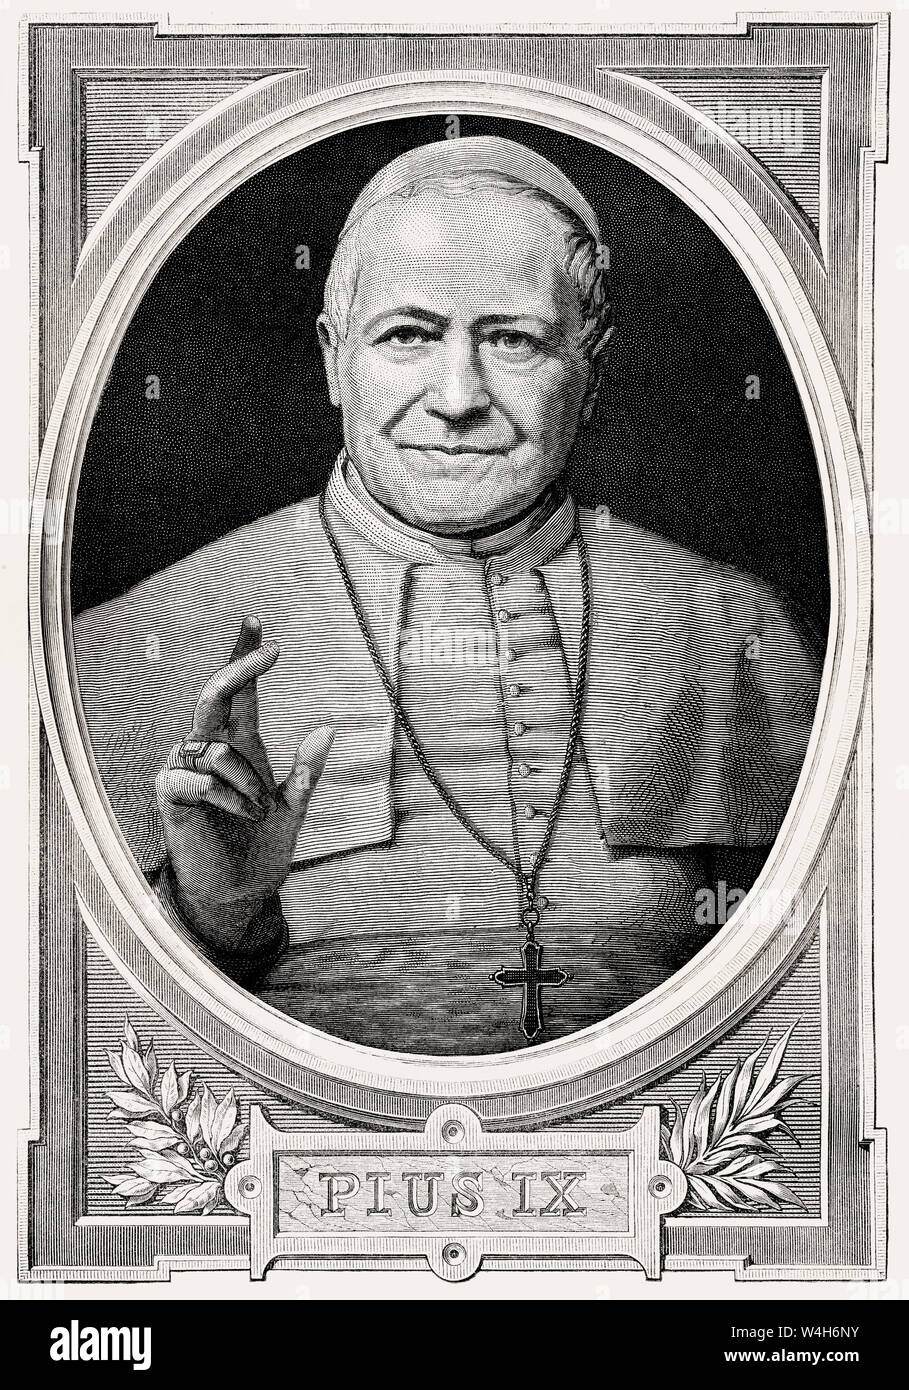 Pope Pius IX, 13 May 1792 – 7 February 1878, Pope from 16 June 1846 to his death Stock Photo